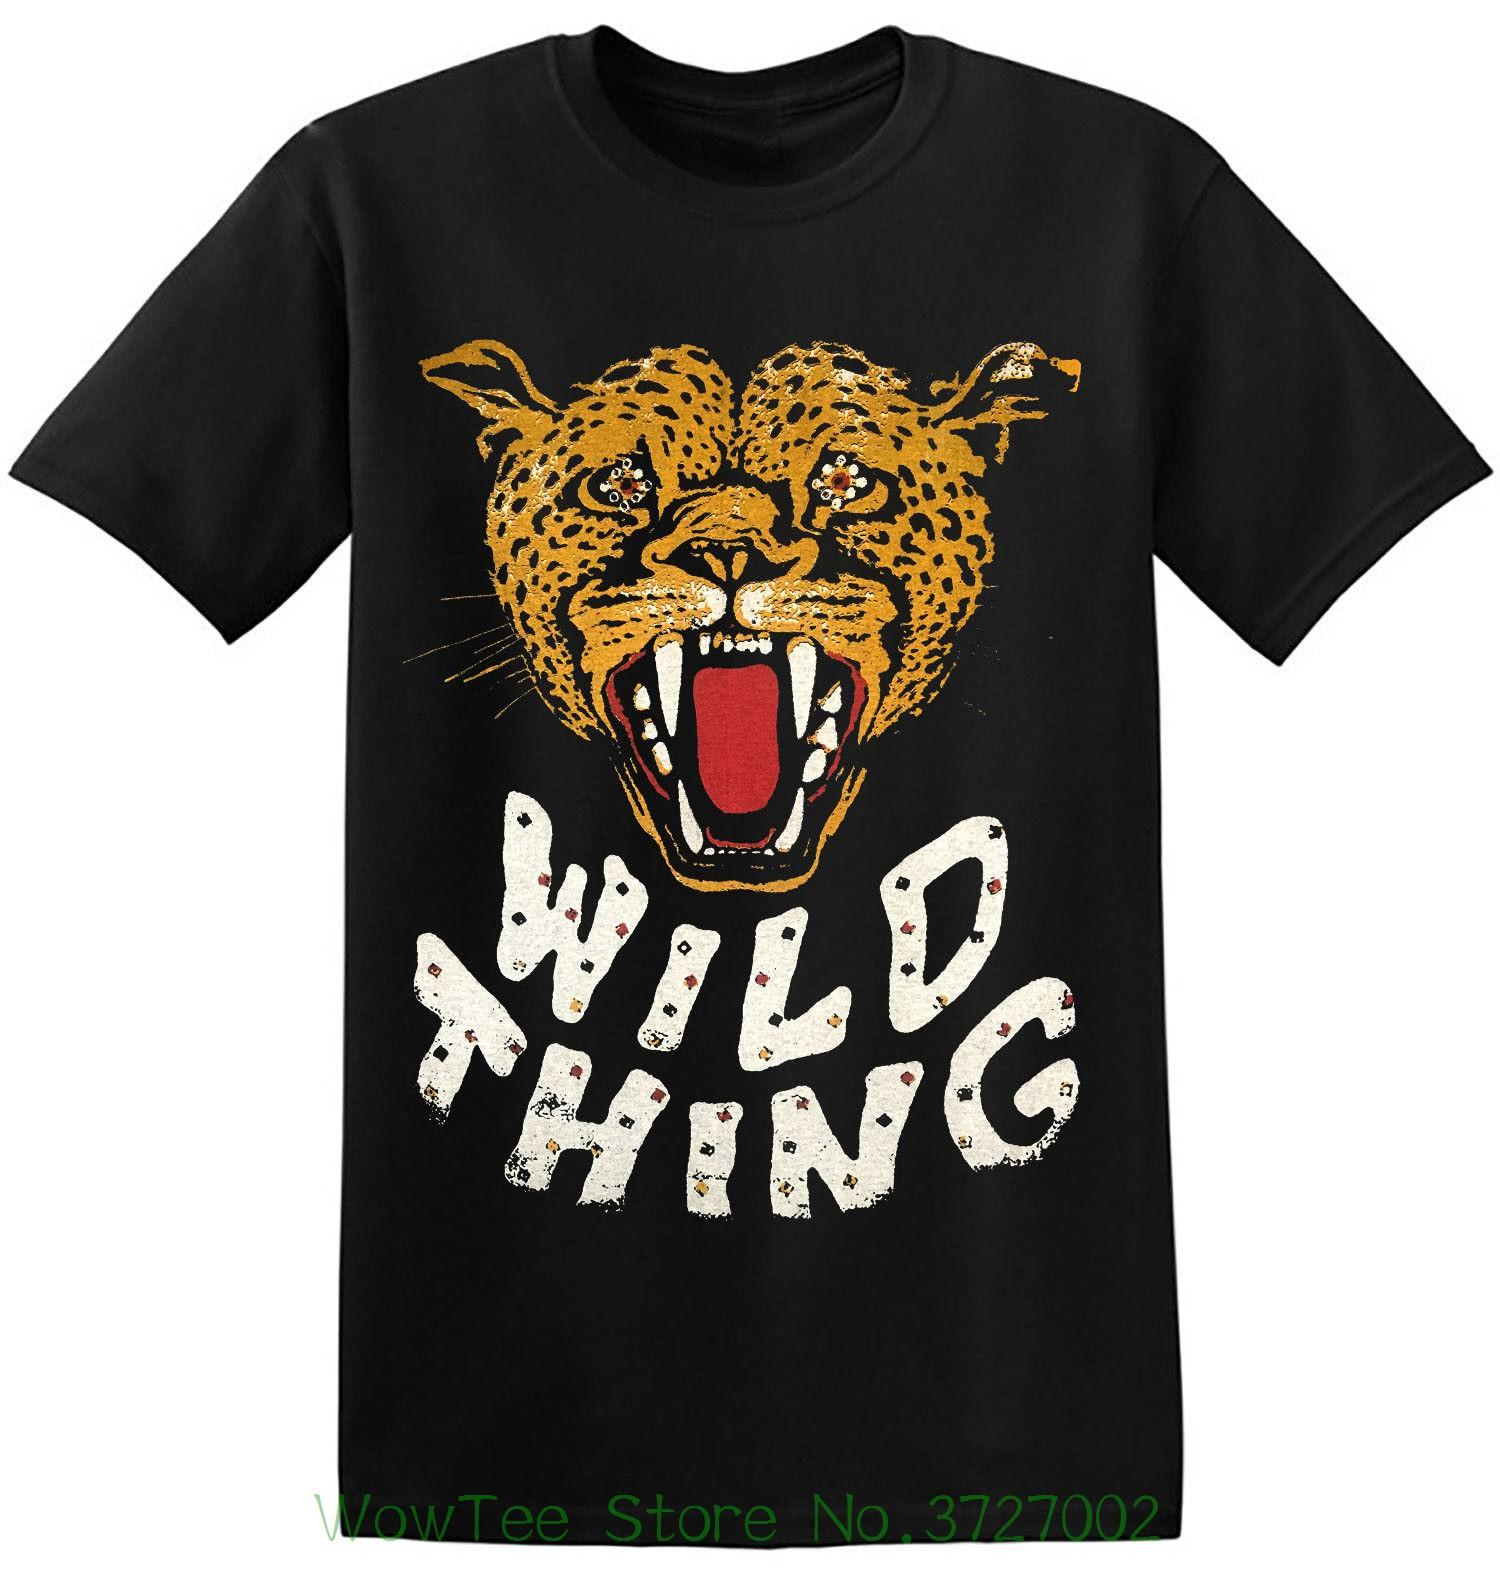 8a8500db Wild Thing Tee Old Band Shirts Black Vintage Classic Rock Band T Shirt 1 A  071 100 % Cotton Tee Shirt For Men Buy Designer Shirts Great Tees From ...